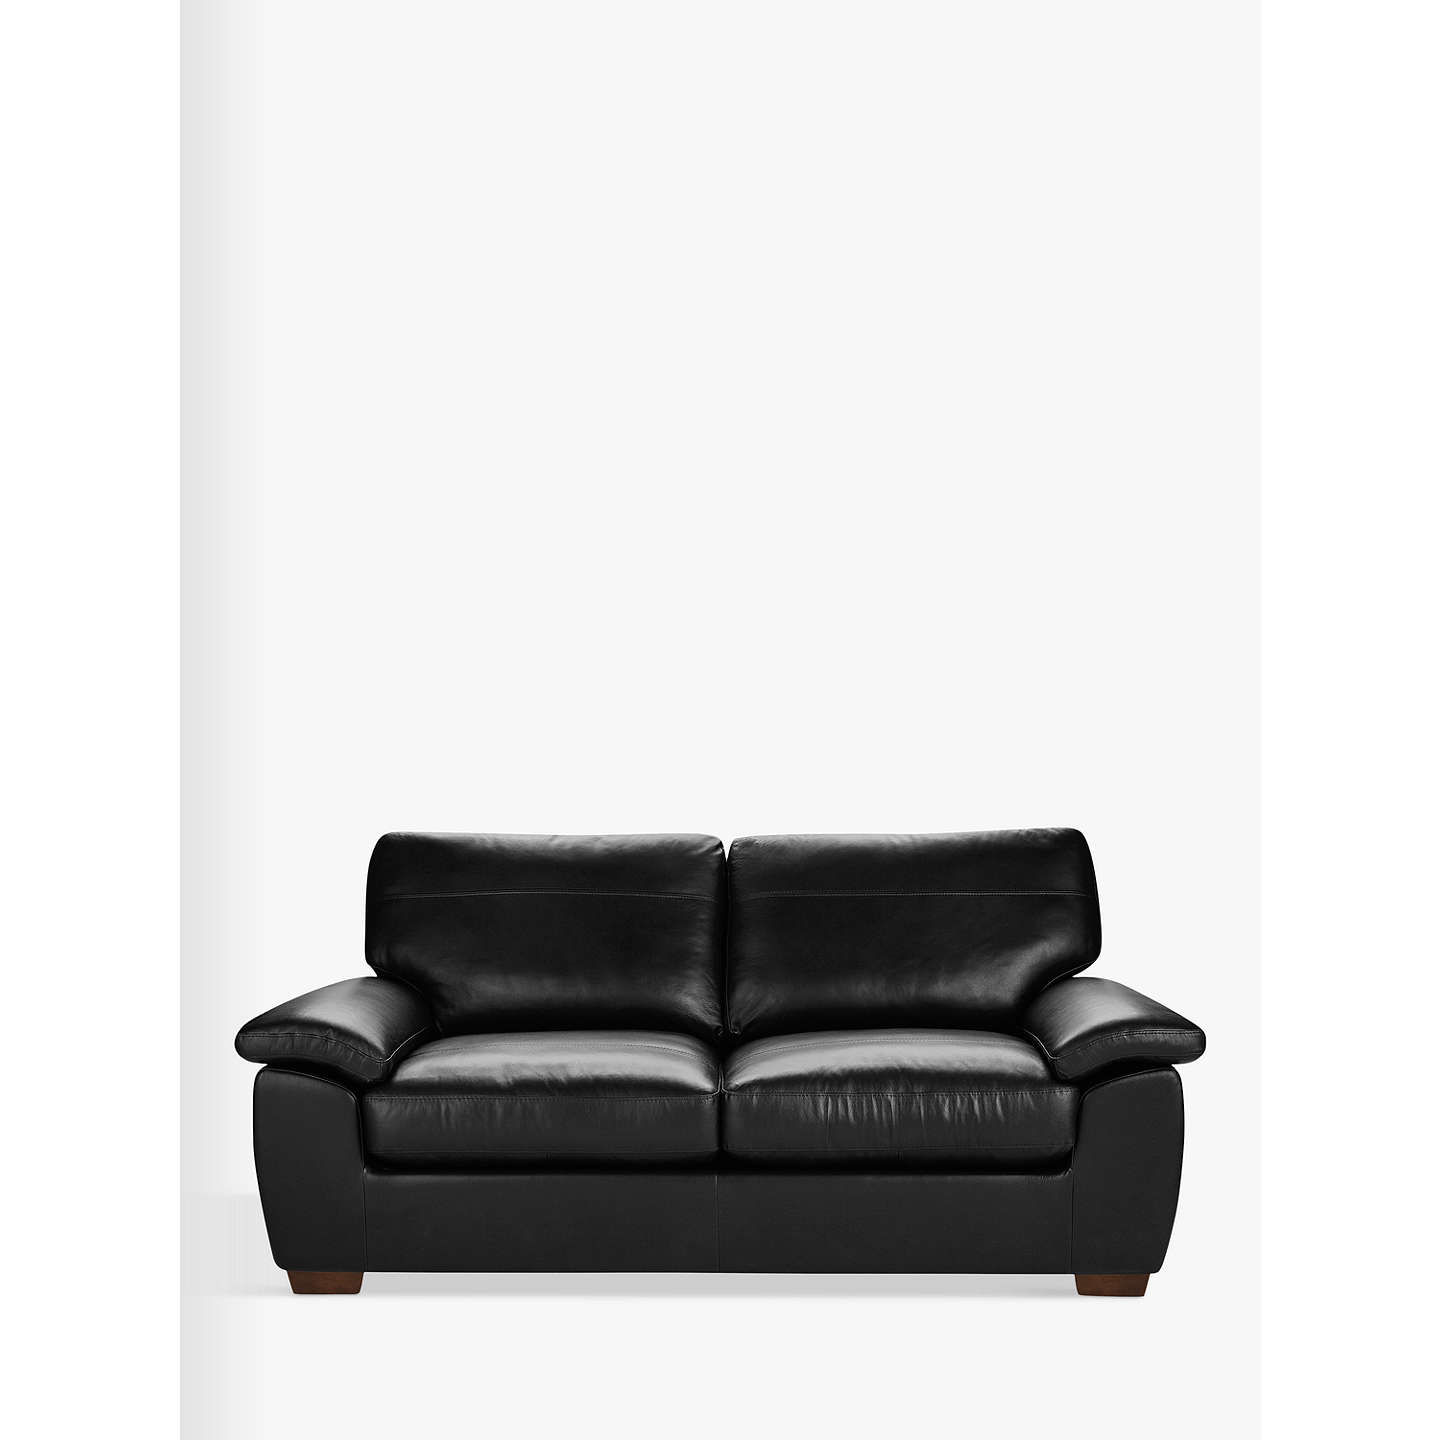 Amazing John Lewis Leather Sofa Home And Textiles Cjindustries Chair Design For Home Cjindustriesco